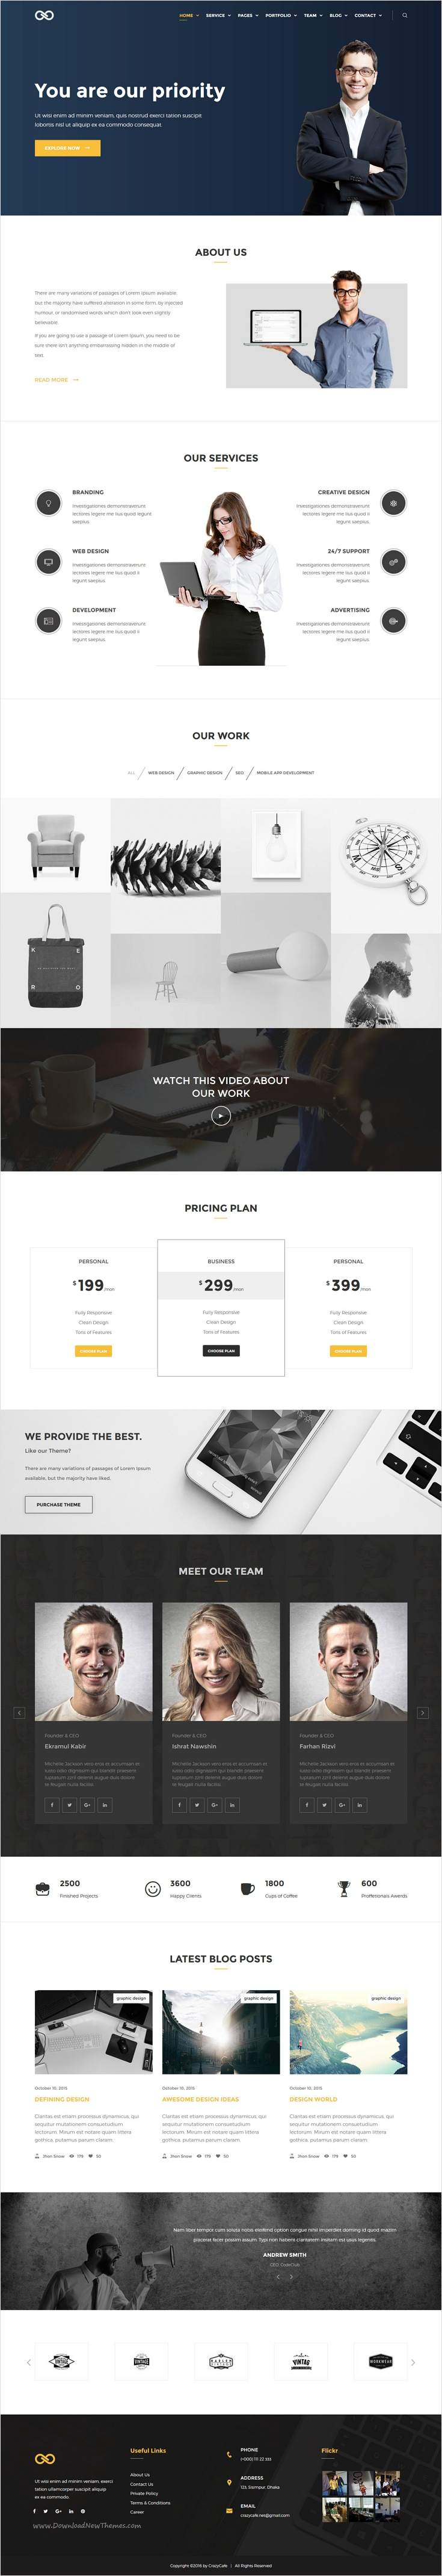 Salad is unique and elegant multipurpose #Bootstrap HTML #Template for Corporate, Portfolio, #Creative Agency, Business, Blog website with 8+ stunning homepage layouts download now➩ https://themeforest.net/item/salad-multipurpose-responsive-html-template/17339200?ref=Datasata